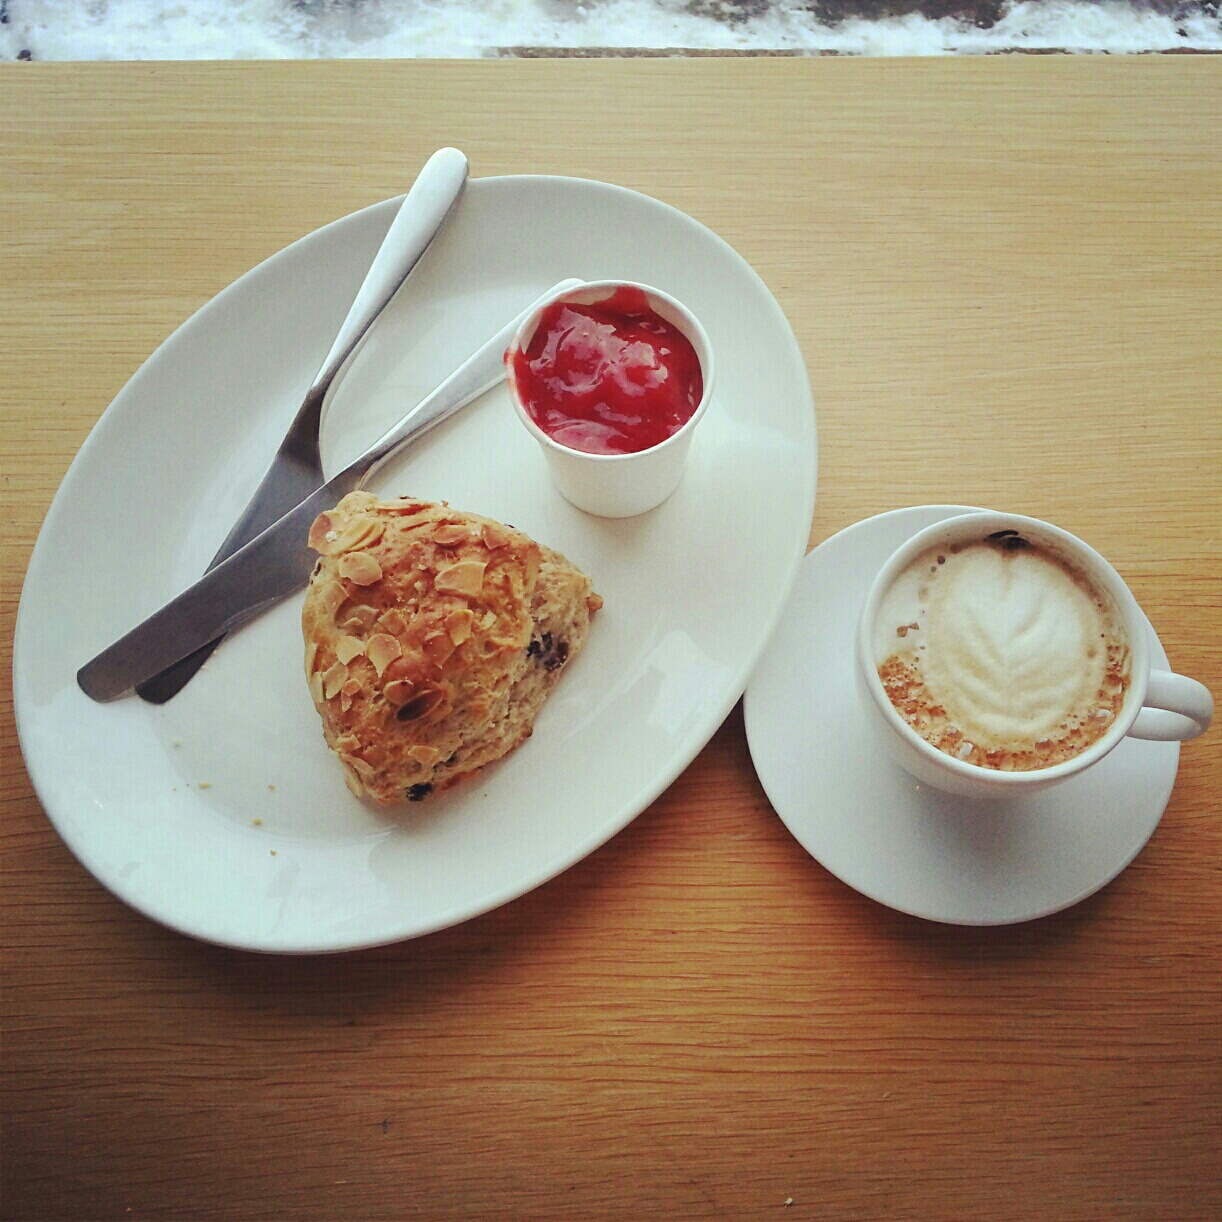 Freshly baked scone with housemade jam and cappuccino